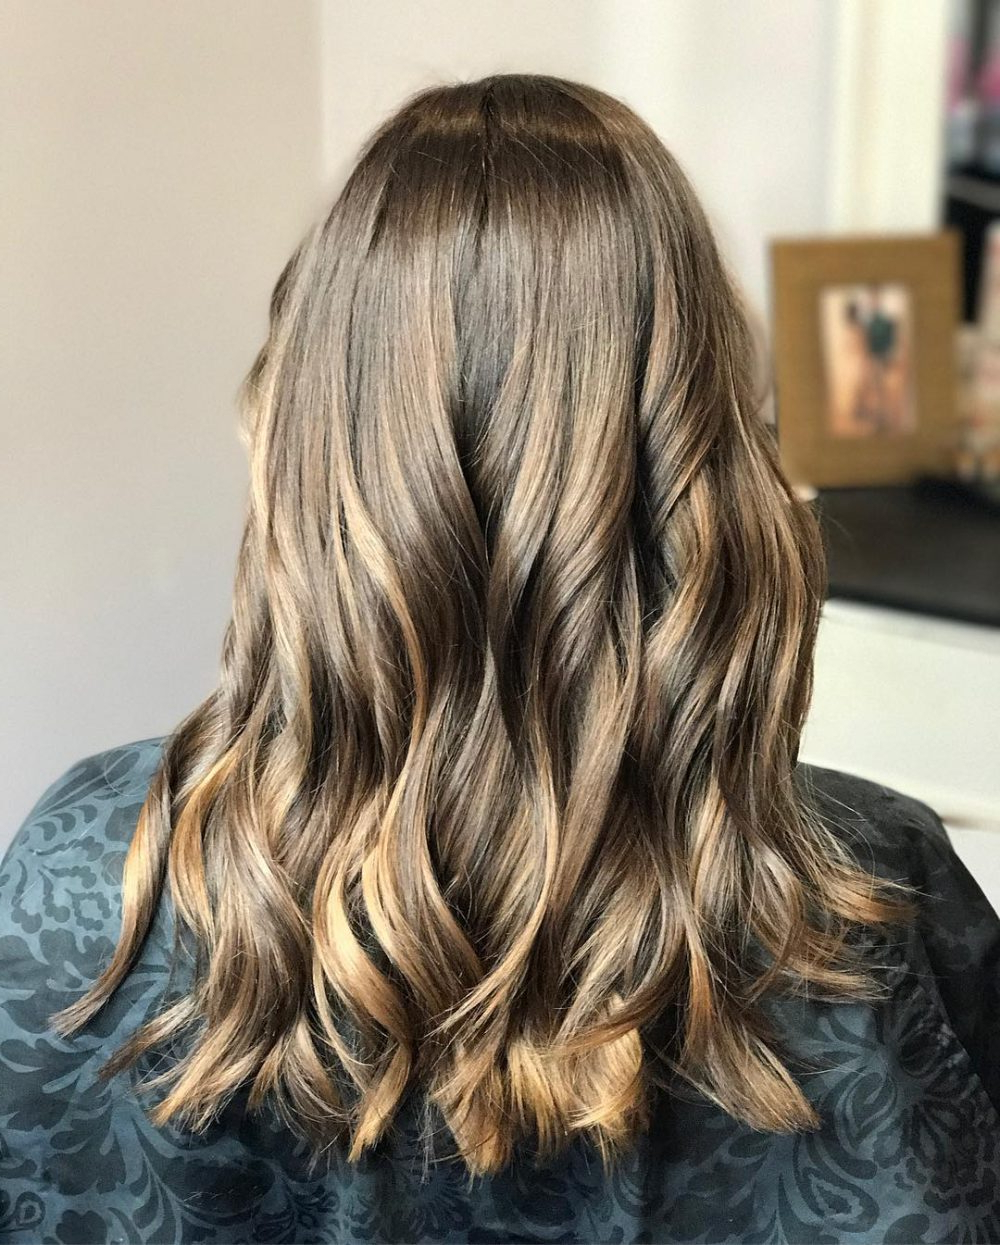 Newest Medium Brown Tones Hairstyles With Subtle Highlights Intended For 34 Sweetest Caramel Highlights On Light To Dark Brown Hair (2019) (View 15 of 20)